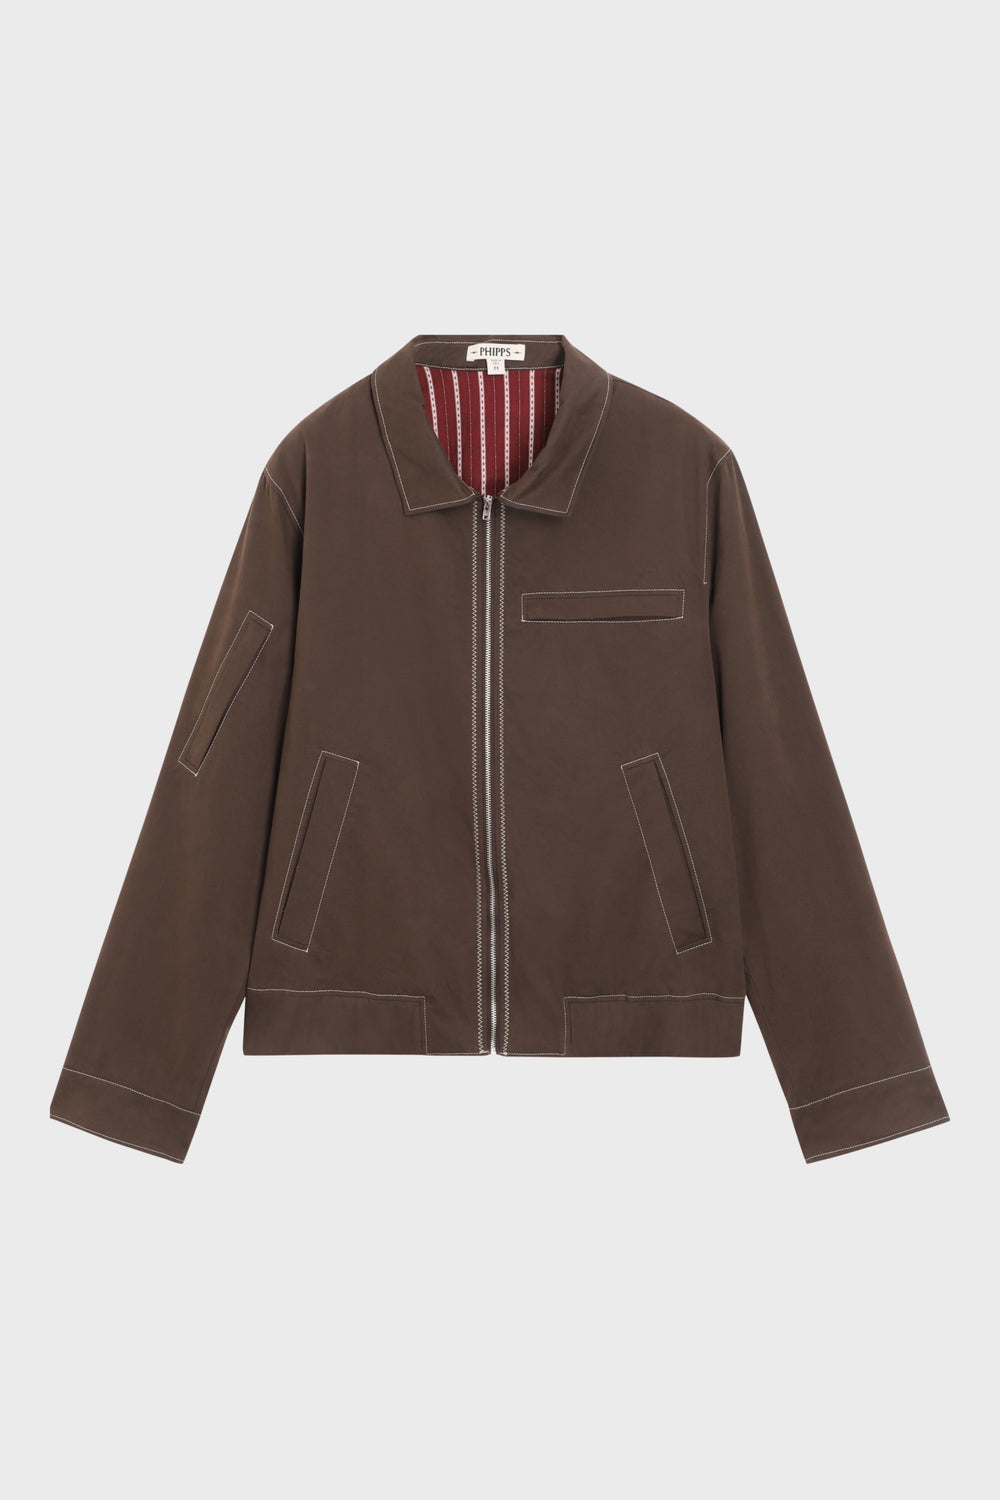 product-color-Dad Jacket